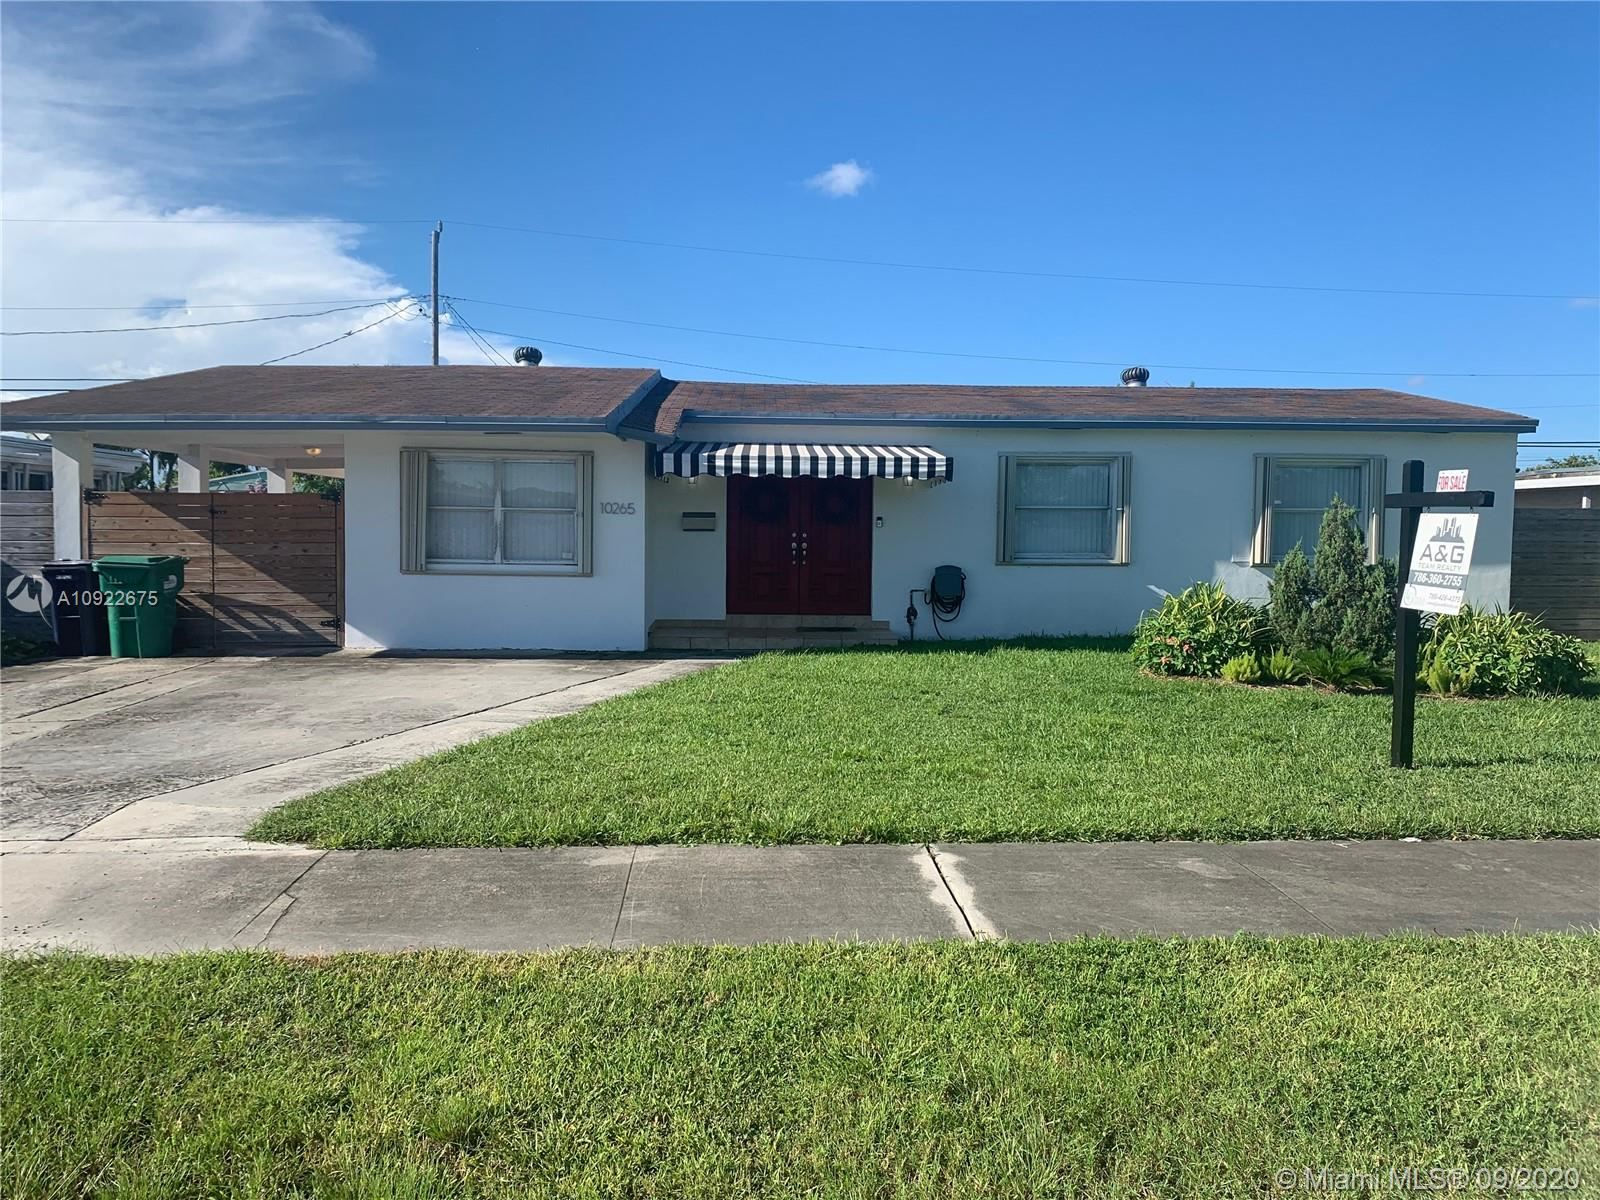 10265 SW 35th St, Miami, FL 33165 - #: A10922675